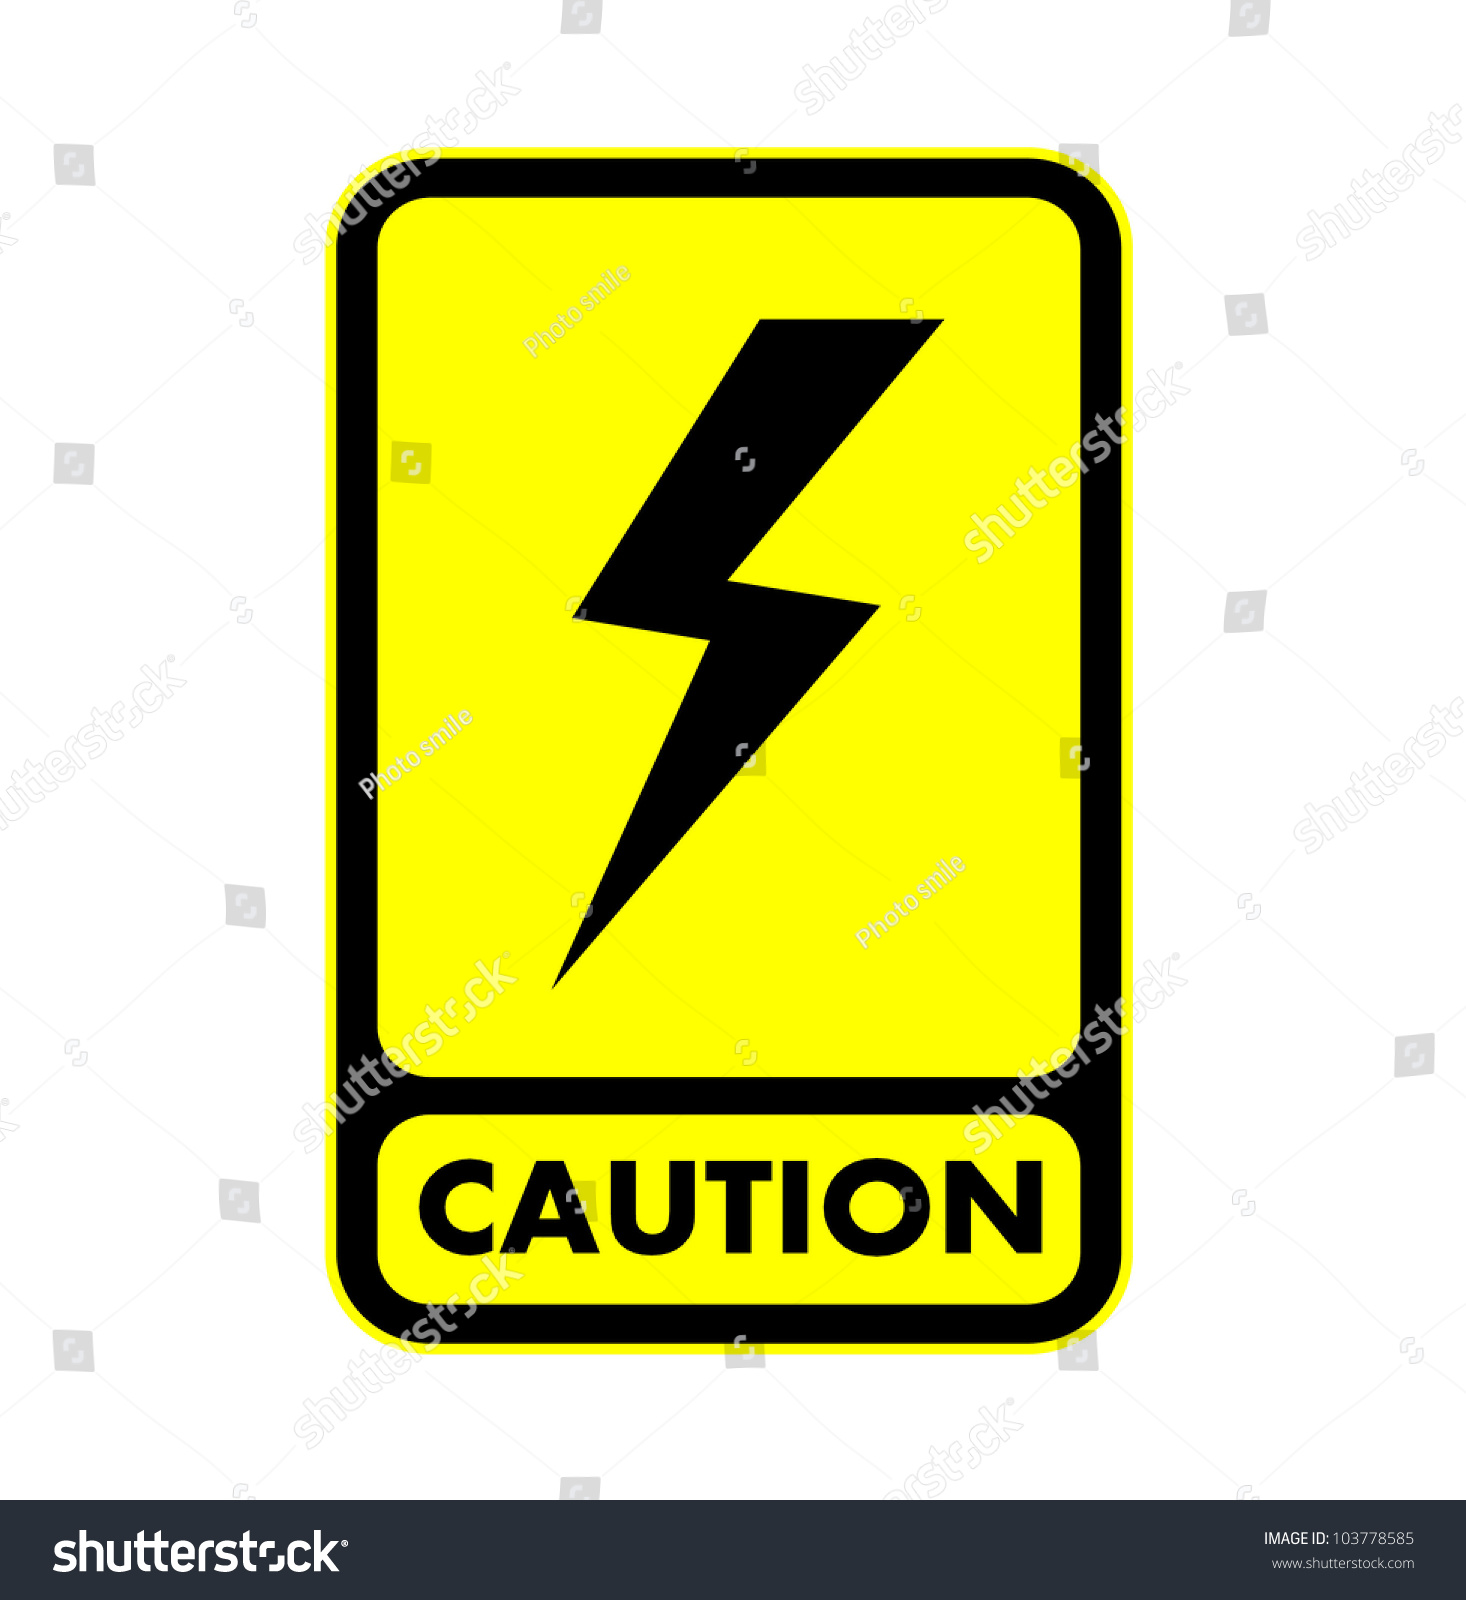 Electric shock caution plate vector eps10 stock vector 103778585 electric shock caution plate vector eps10 biocorpaavc Image collections